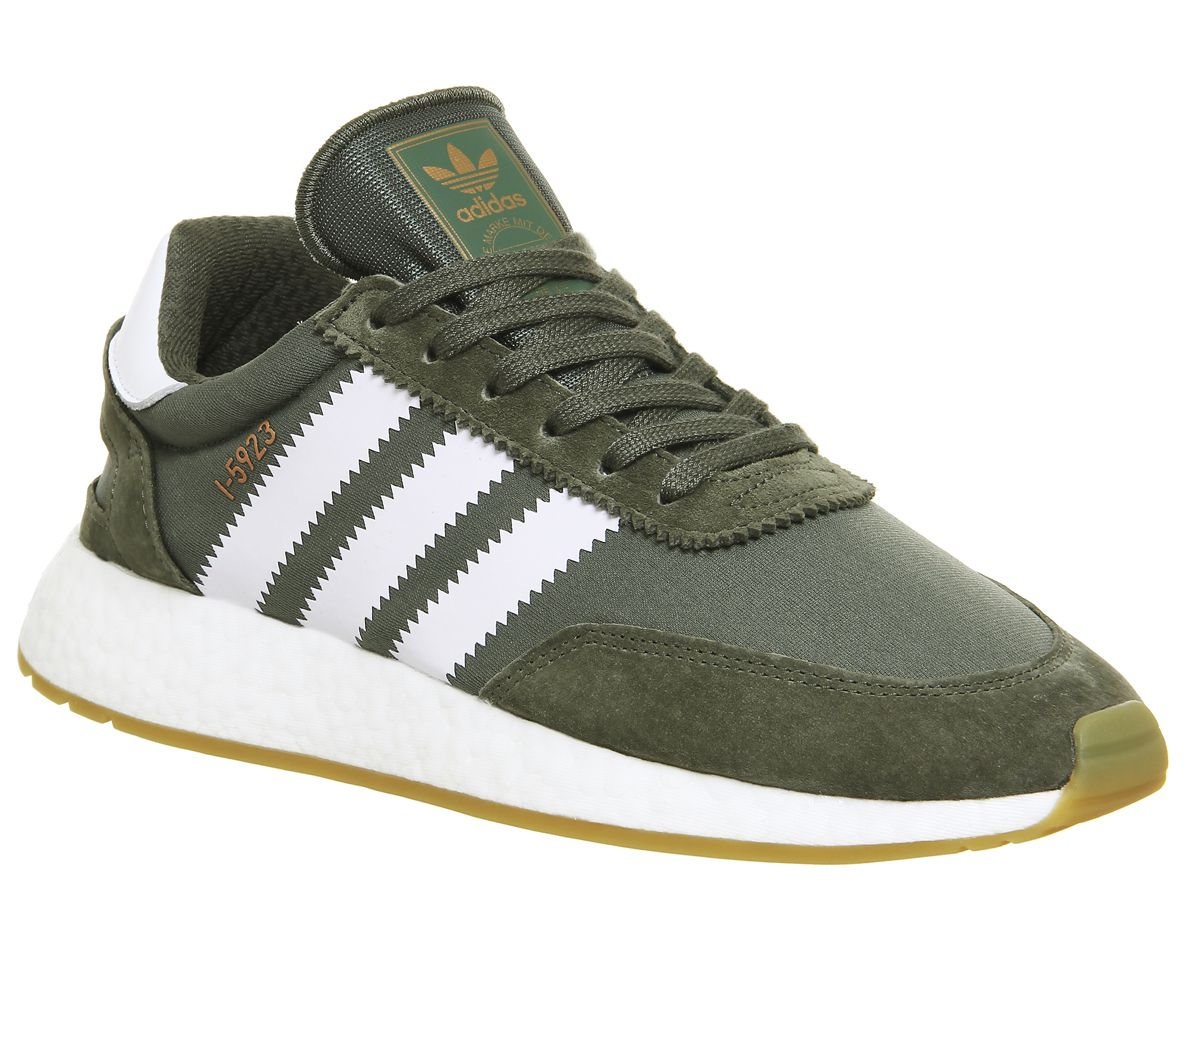 0c32c759a0be7 adidas I-5923 Trainers Base Green White Gum - Unisex Sports